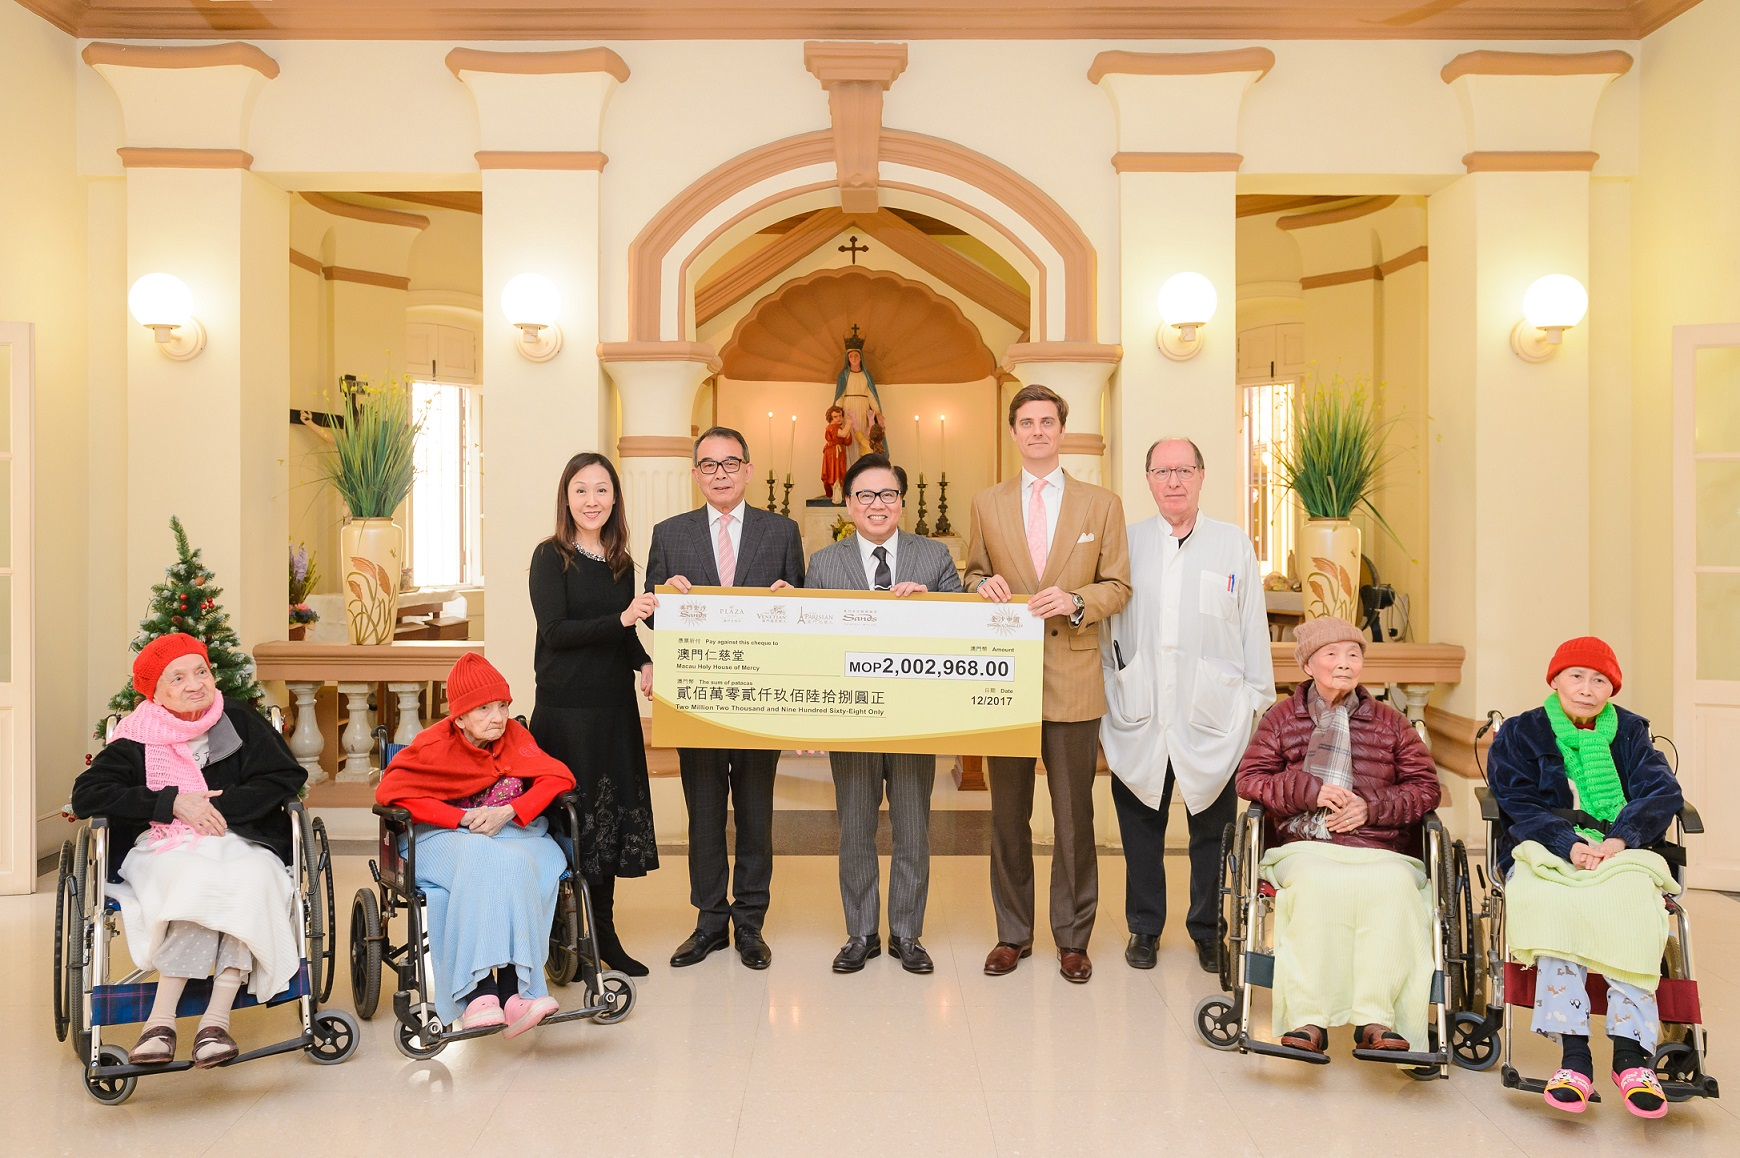 Sands China President Dr. Wilfred Wong (standing centre) and Vice President of Corporate Communications and Community Affairs Winnie Wong (standing left) present a MOP 2 million cheque to Macau Holy House of Mercy